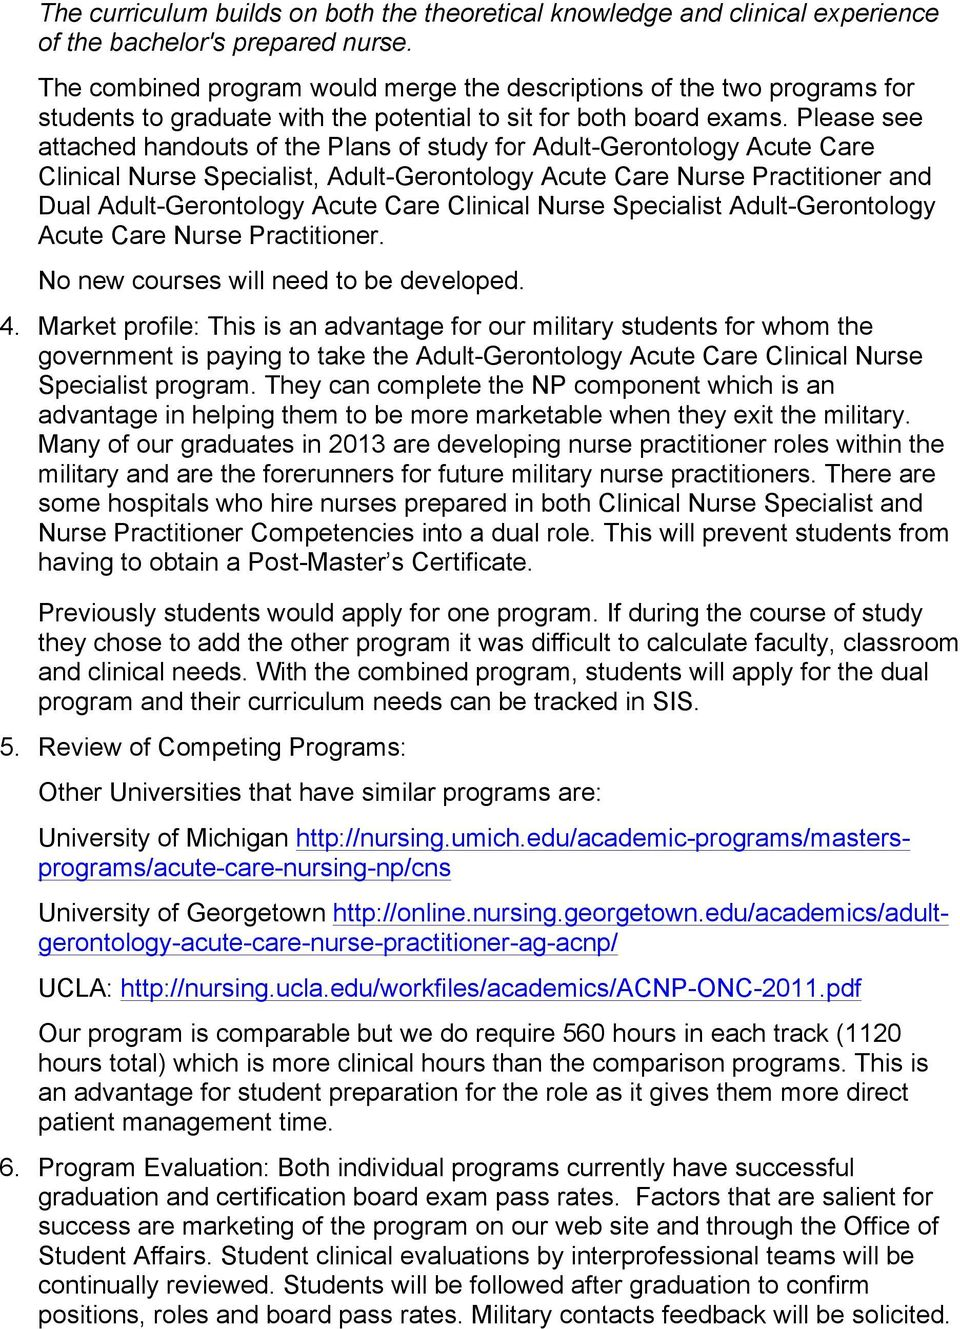 Please see attached handouts of the Plans of study for Adult-Gerontology Acute Care Clinical Nurse Specialist, Adult-Gerontology Acute Care Nurse Practitioner and Dual Adult-Gerontology Acute Care